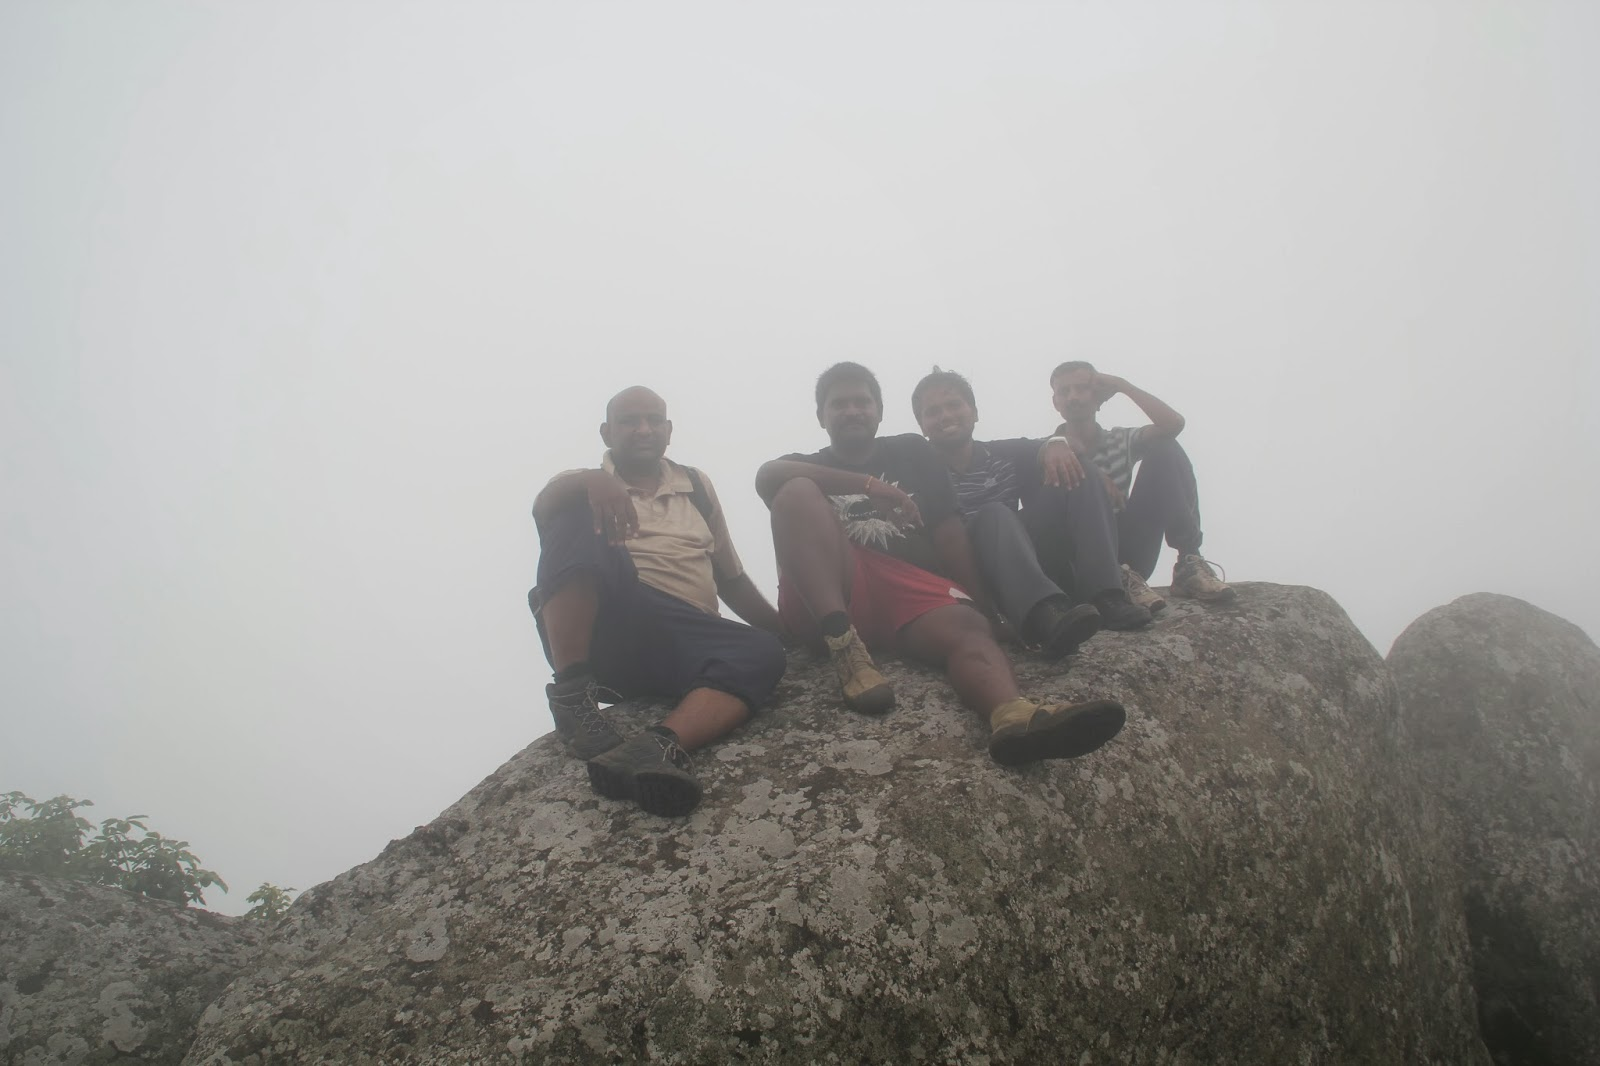 Dinesh, Soorya, Arif and Sridhar at Mahendragiri